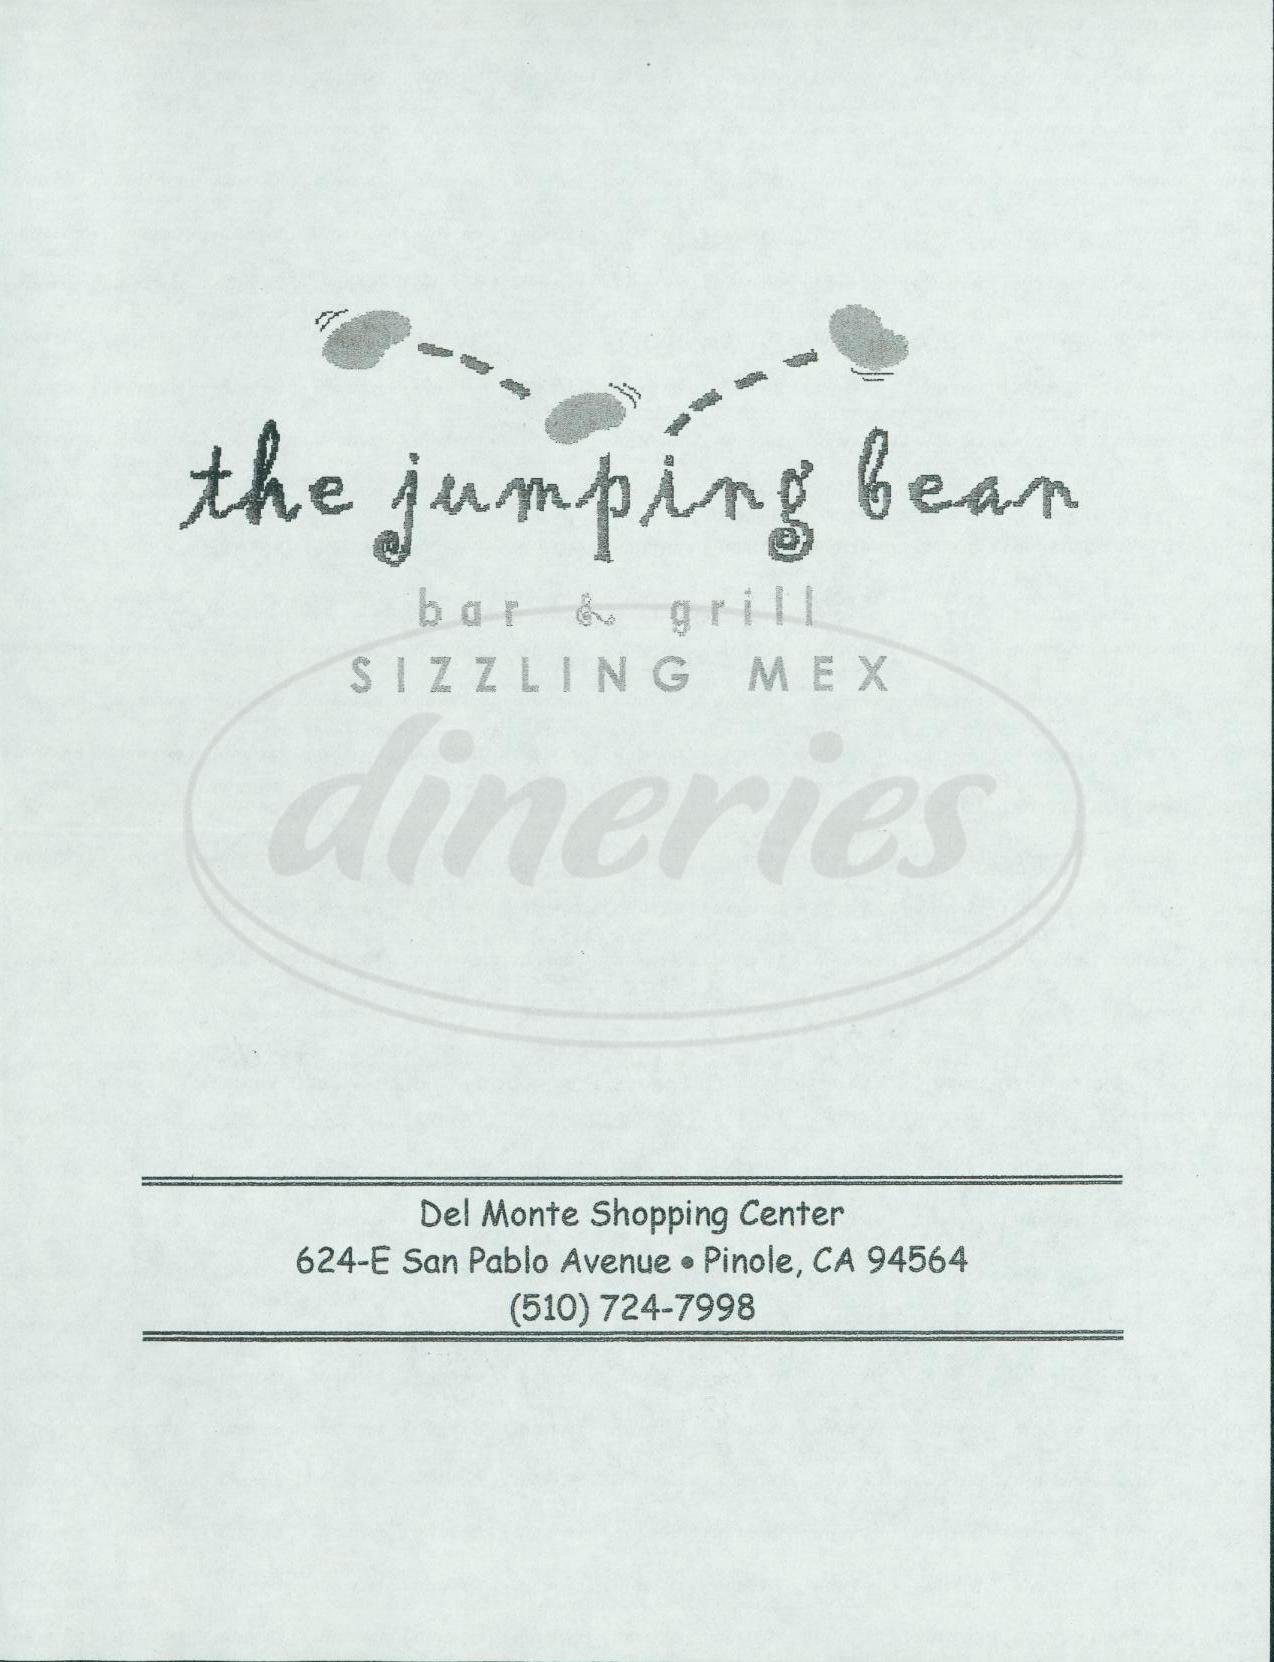 menu for The Jumping Bean